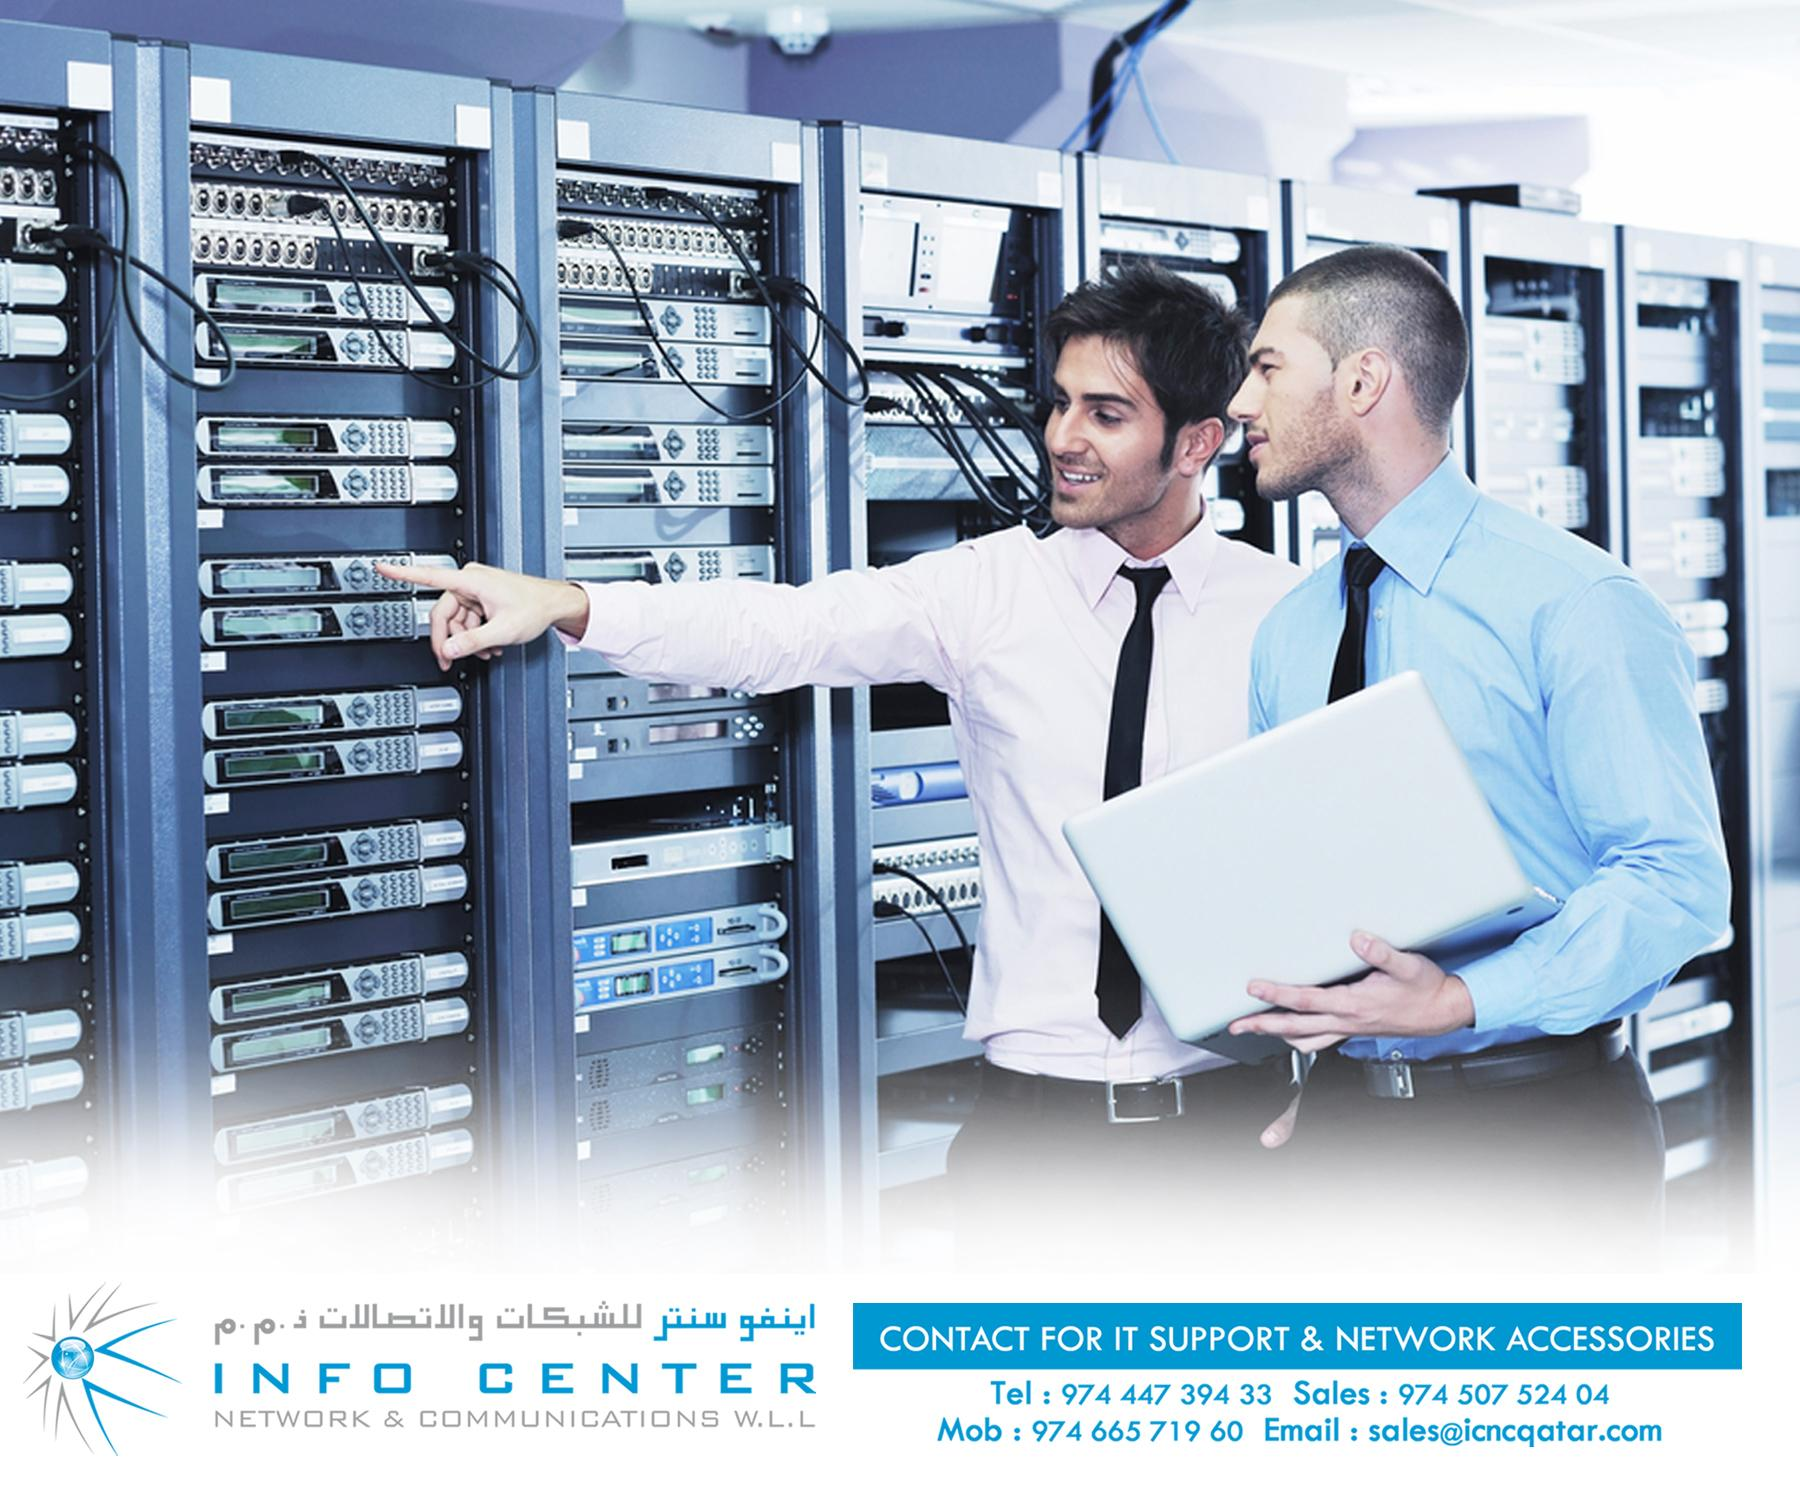 WiFi Solutions / Computer service / PA System/ IT